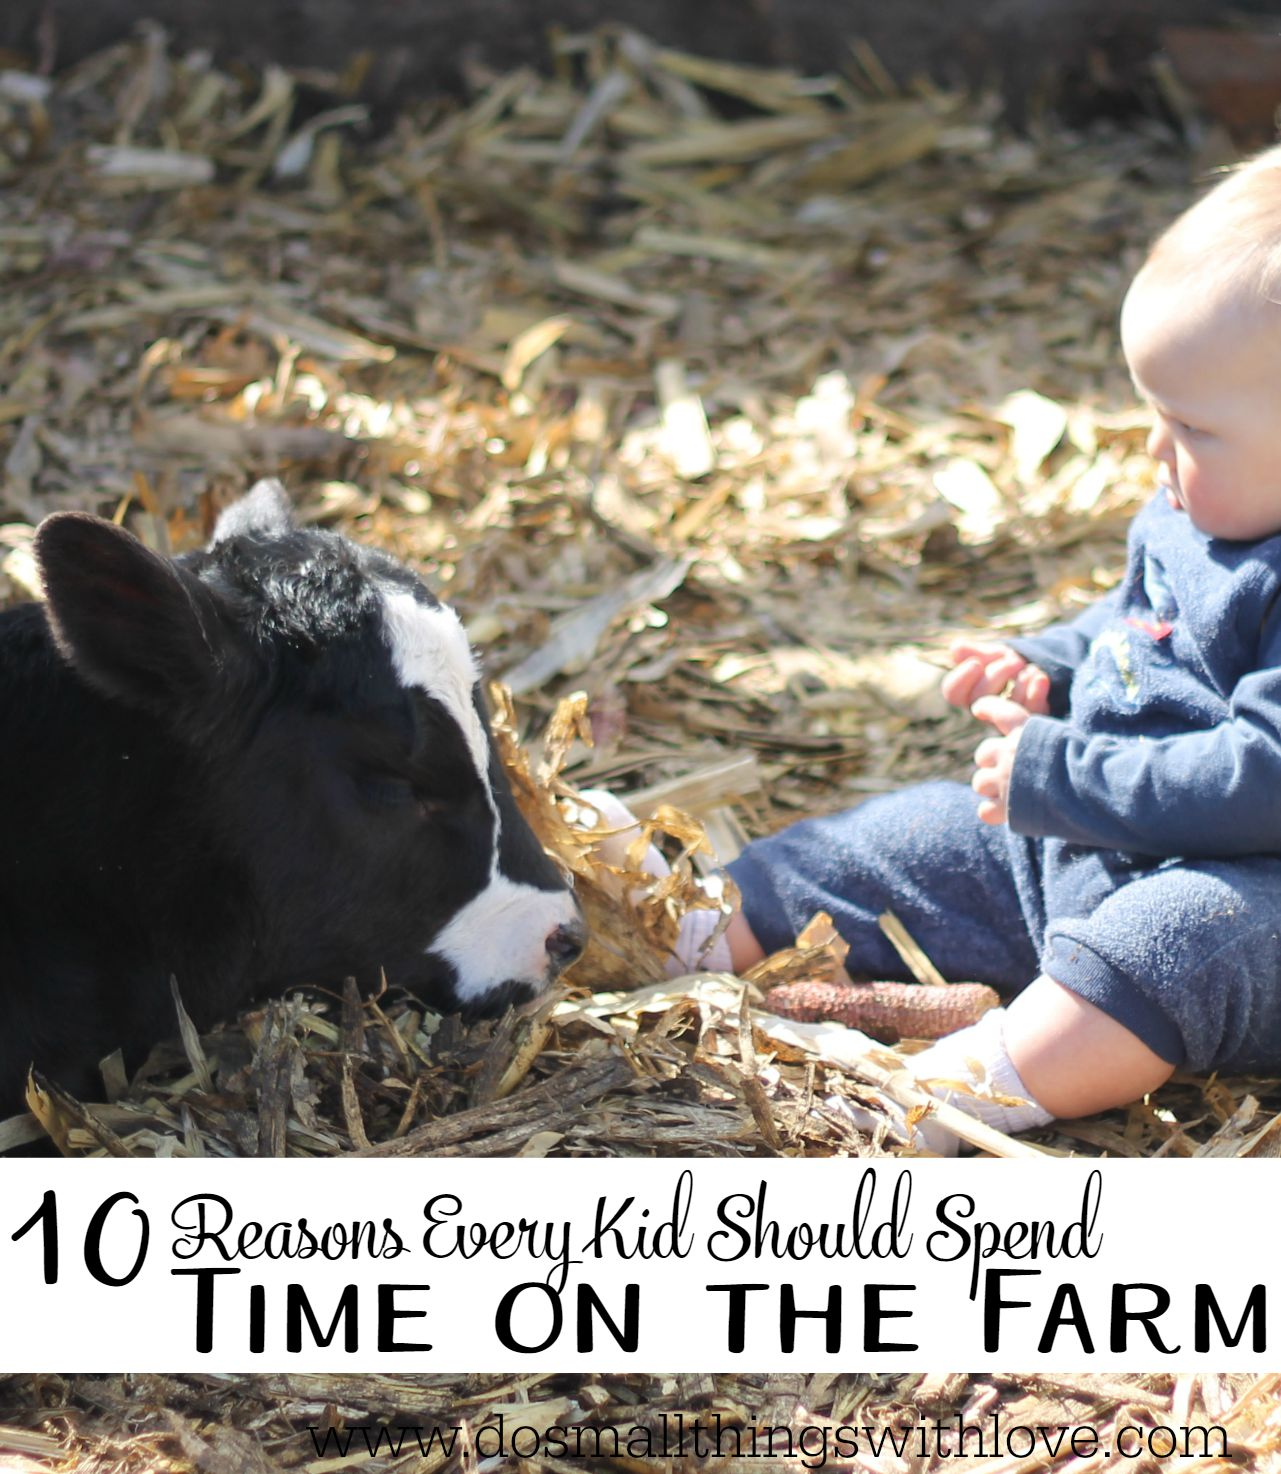 10 reasons every kid should spend some time on the farm